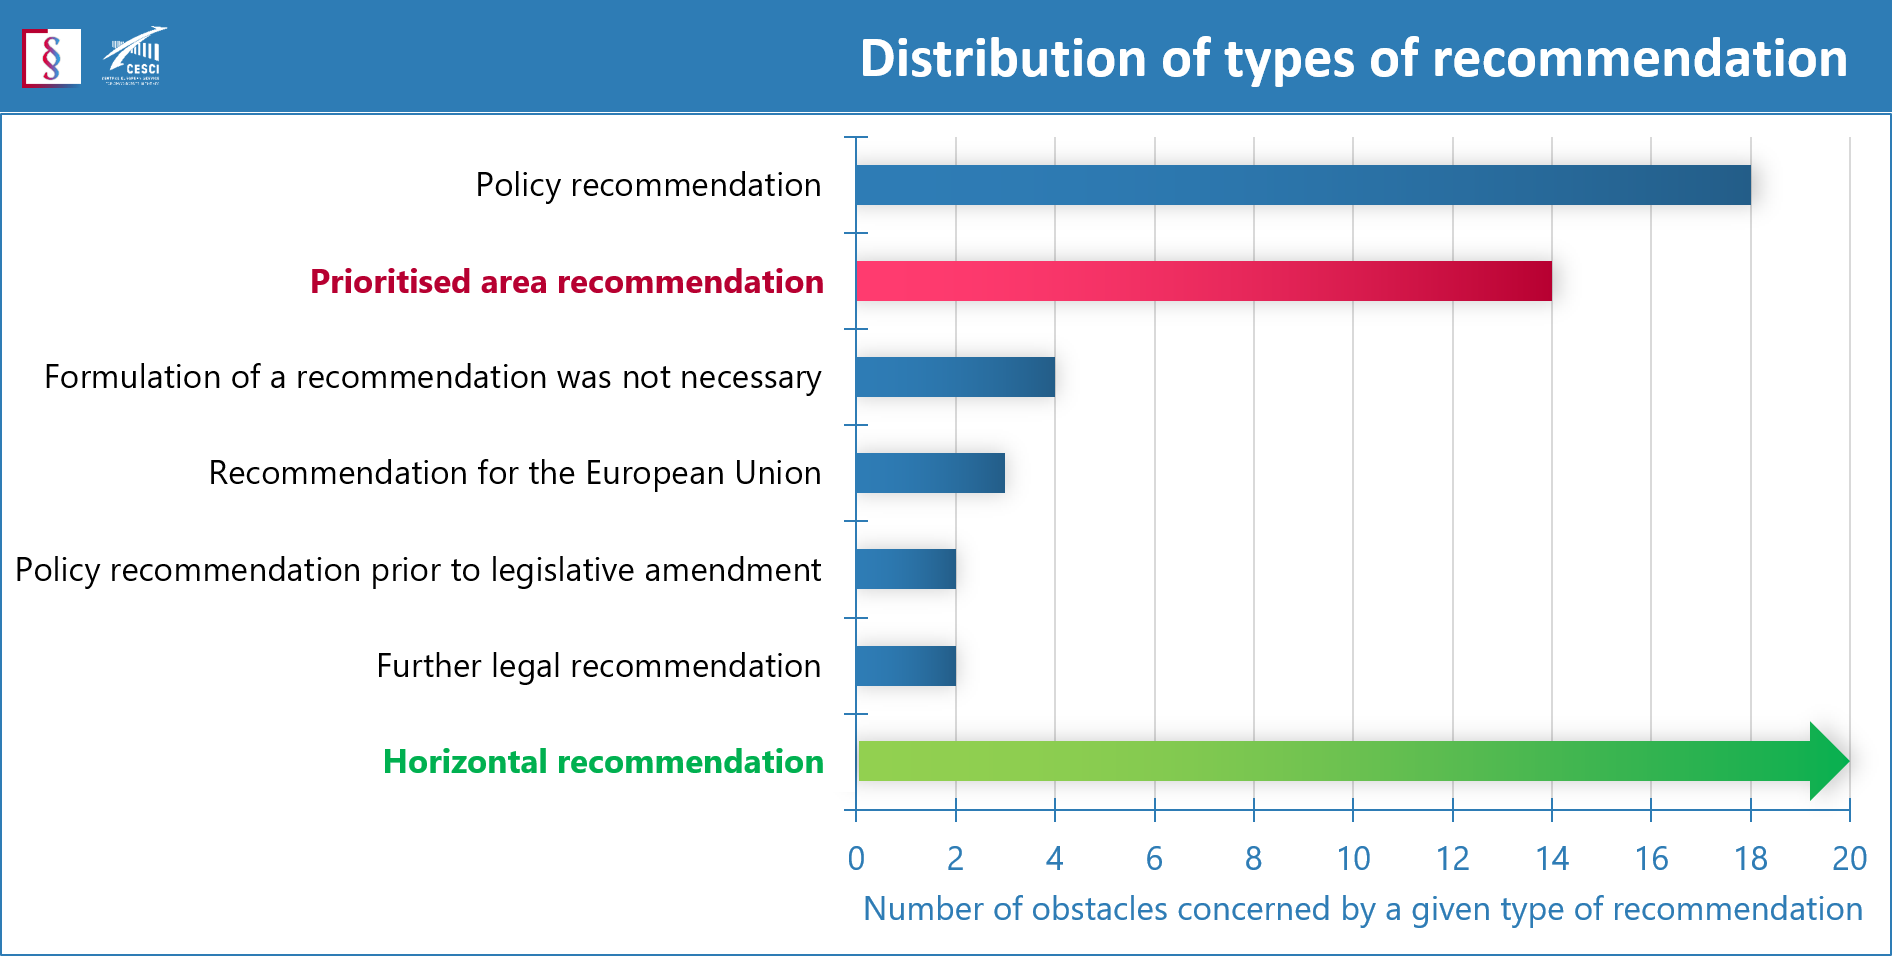 Distribution of types of recommendation